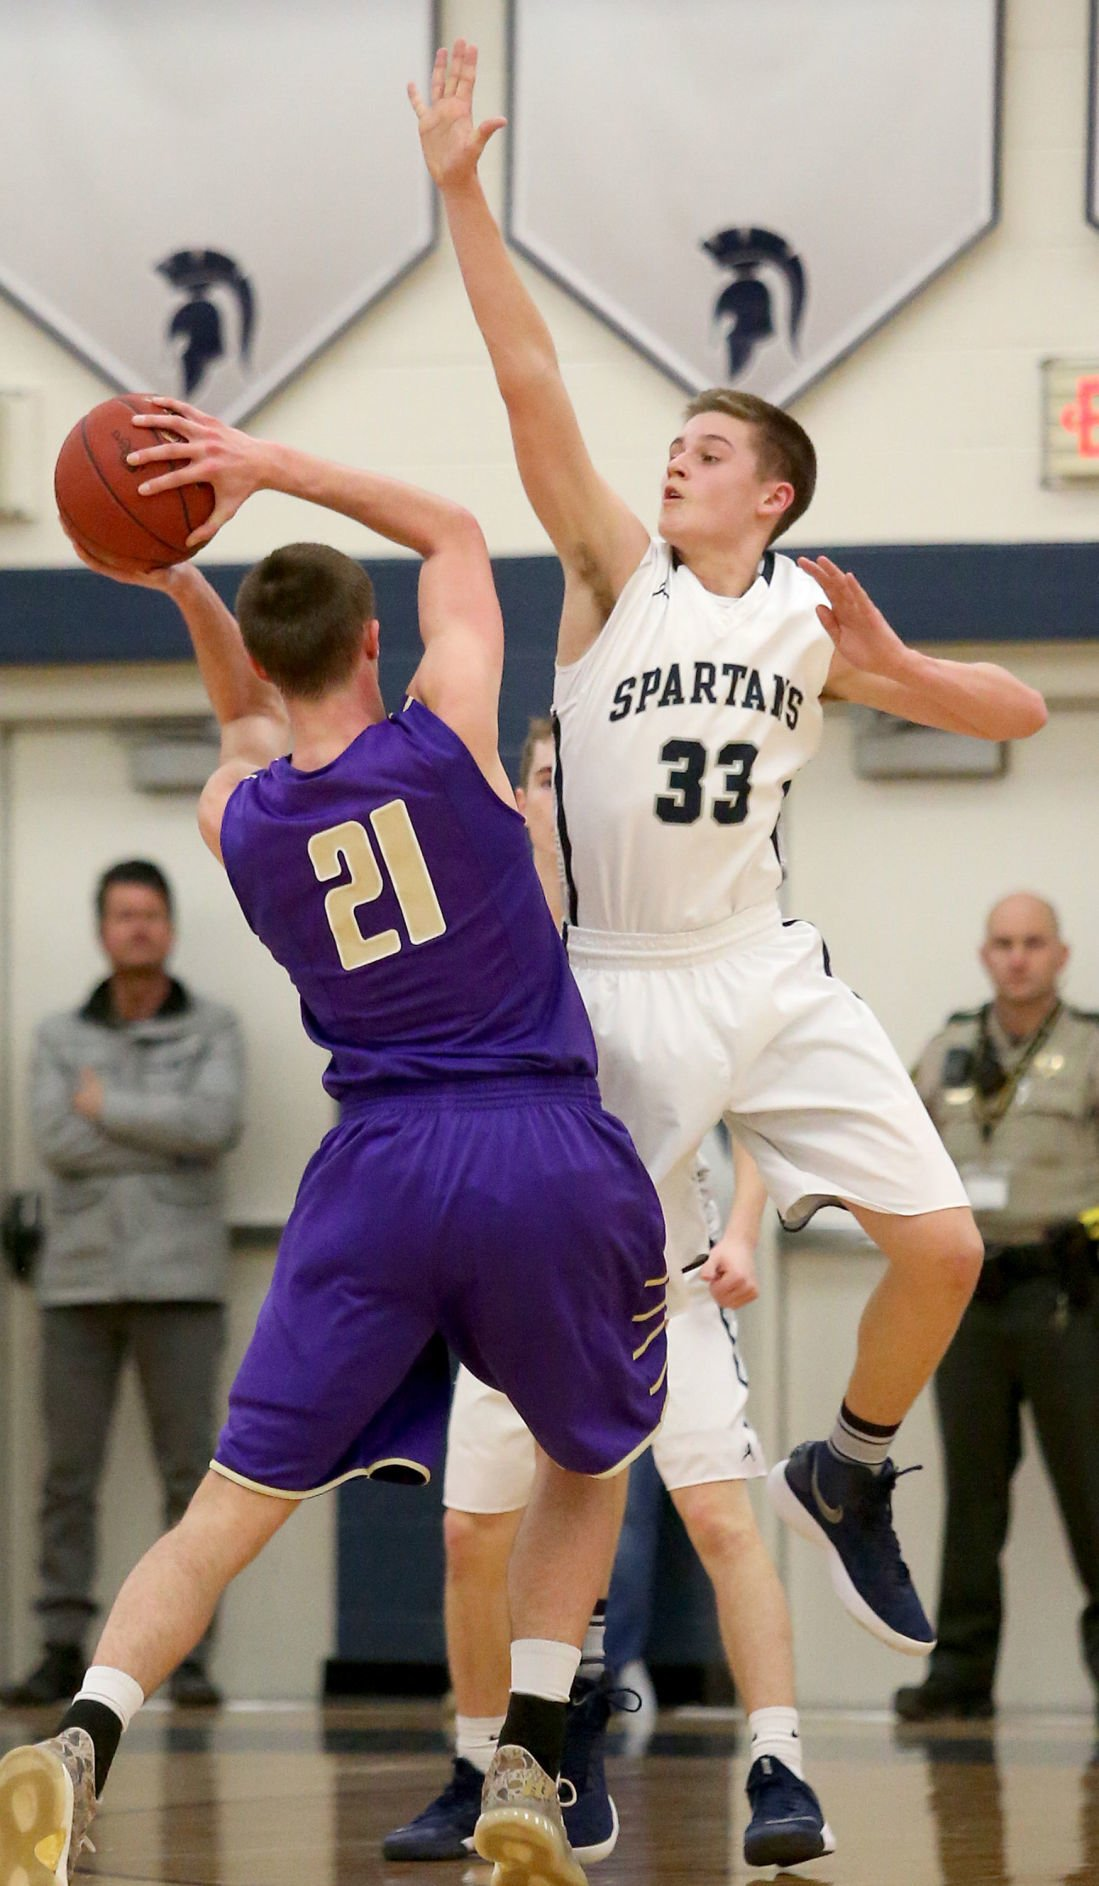 PV gets hot, Wieskamp goes cold in blowout loss for Muskies